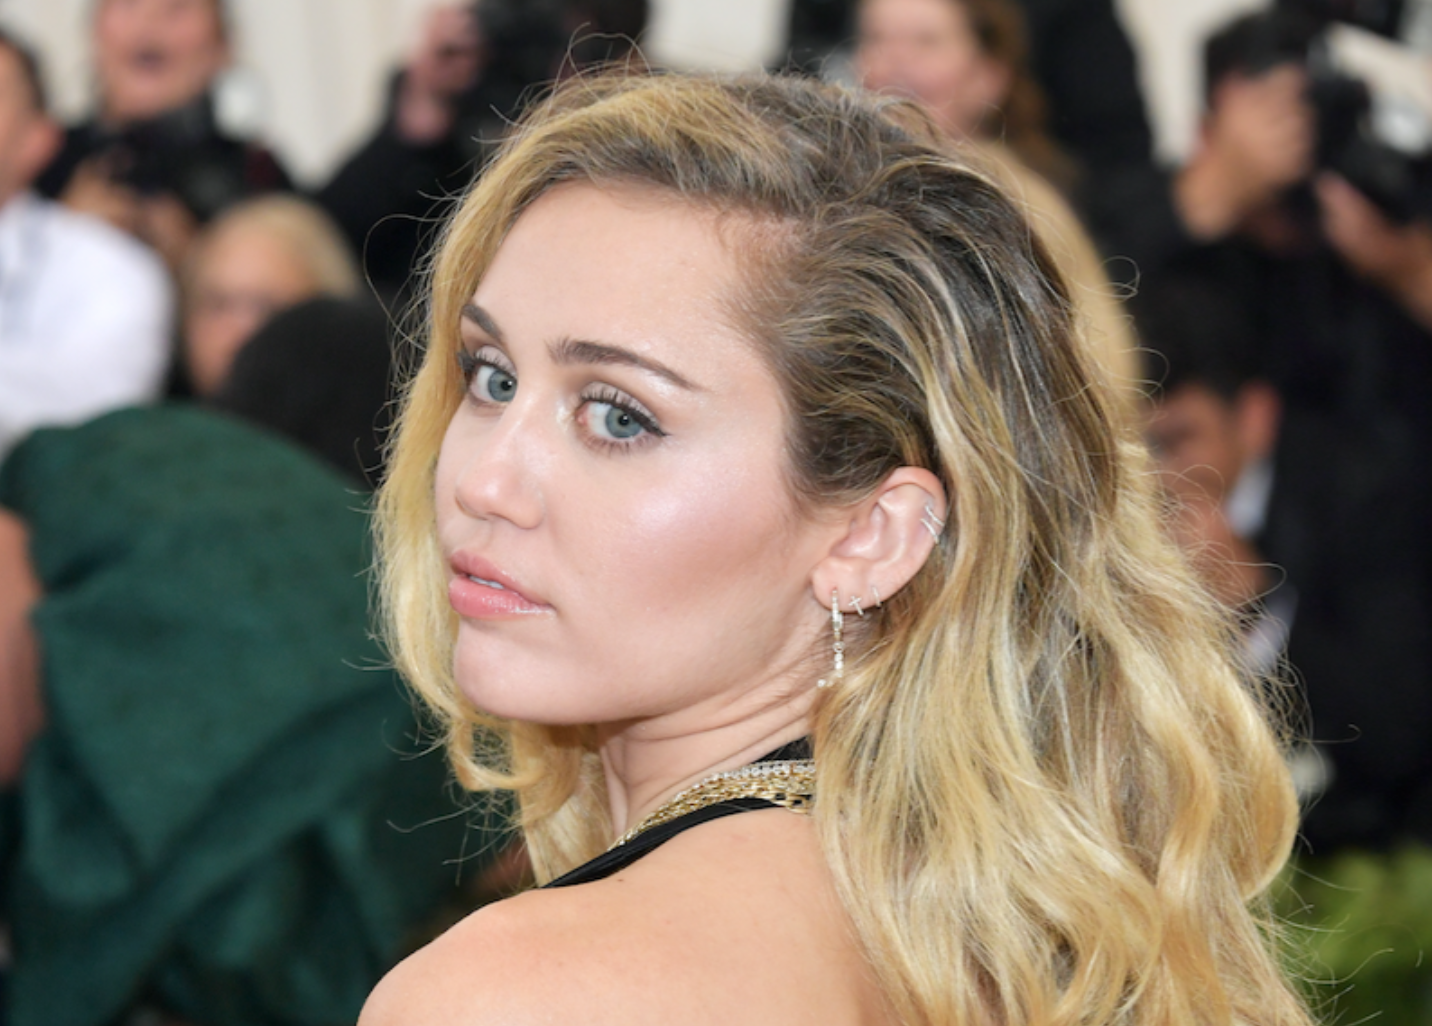 Miley Cyrus Breaks Instagram Silence with Cryptic Video